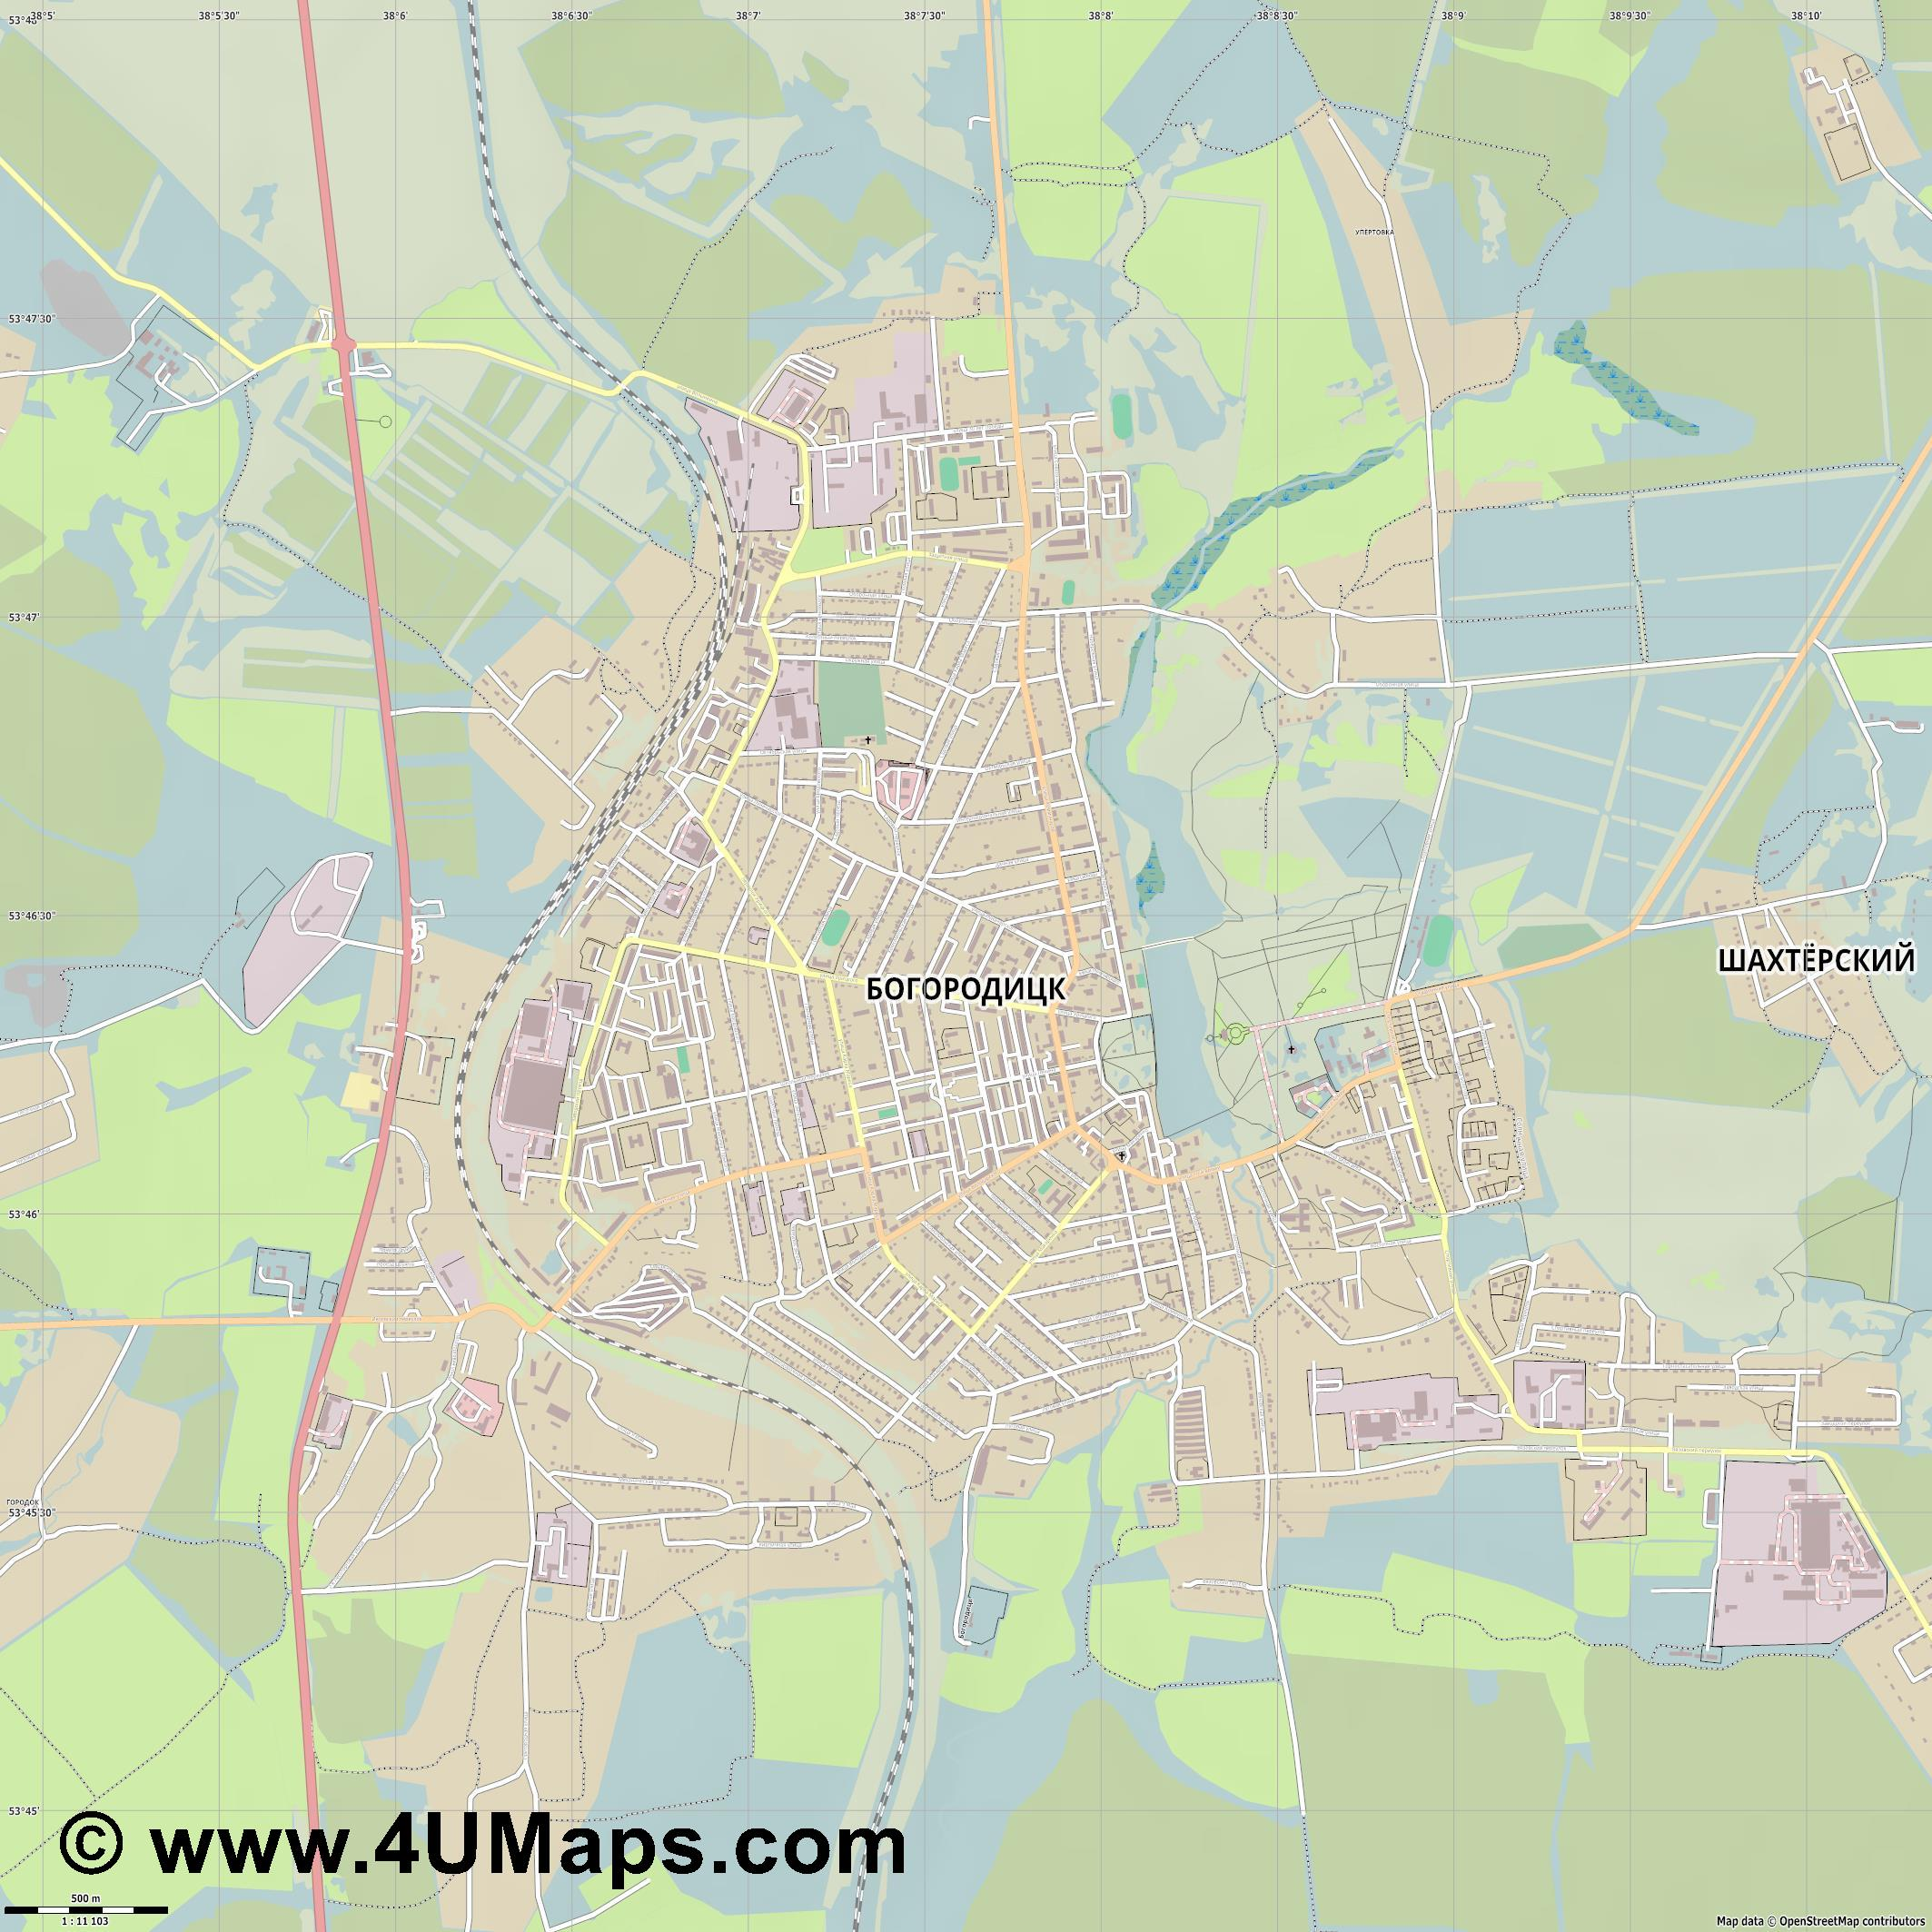 Богородицк Bogoroditsk Bogorodick Bogorodizk  jpg ultra high detail preview vector city map